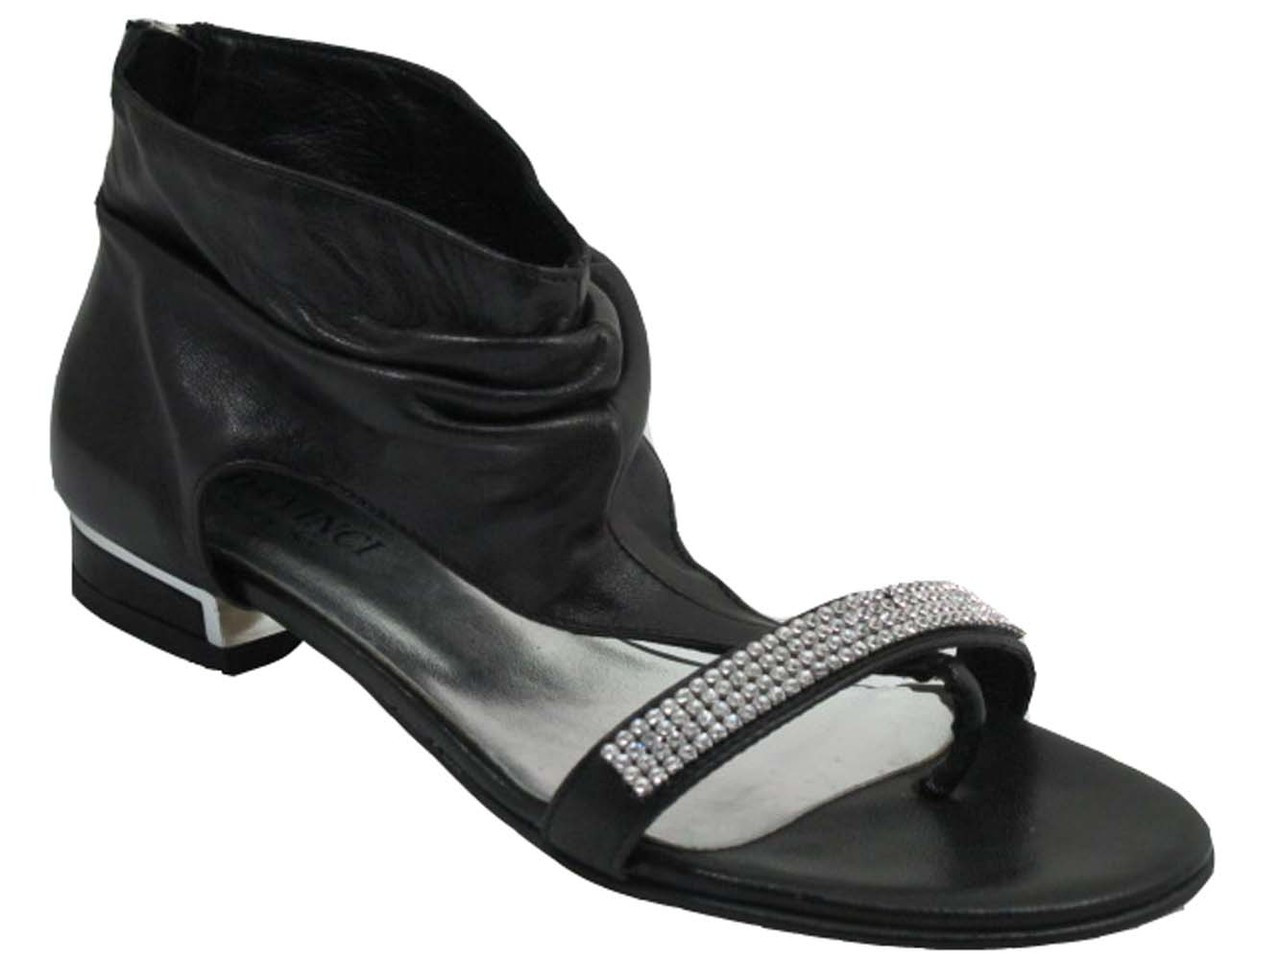 b4c8d5a225b705 Davinci 2882 Women s Ankle flat sandals with sparkling strip of stones